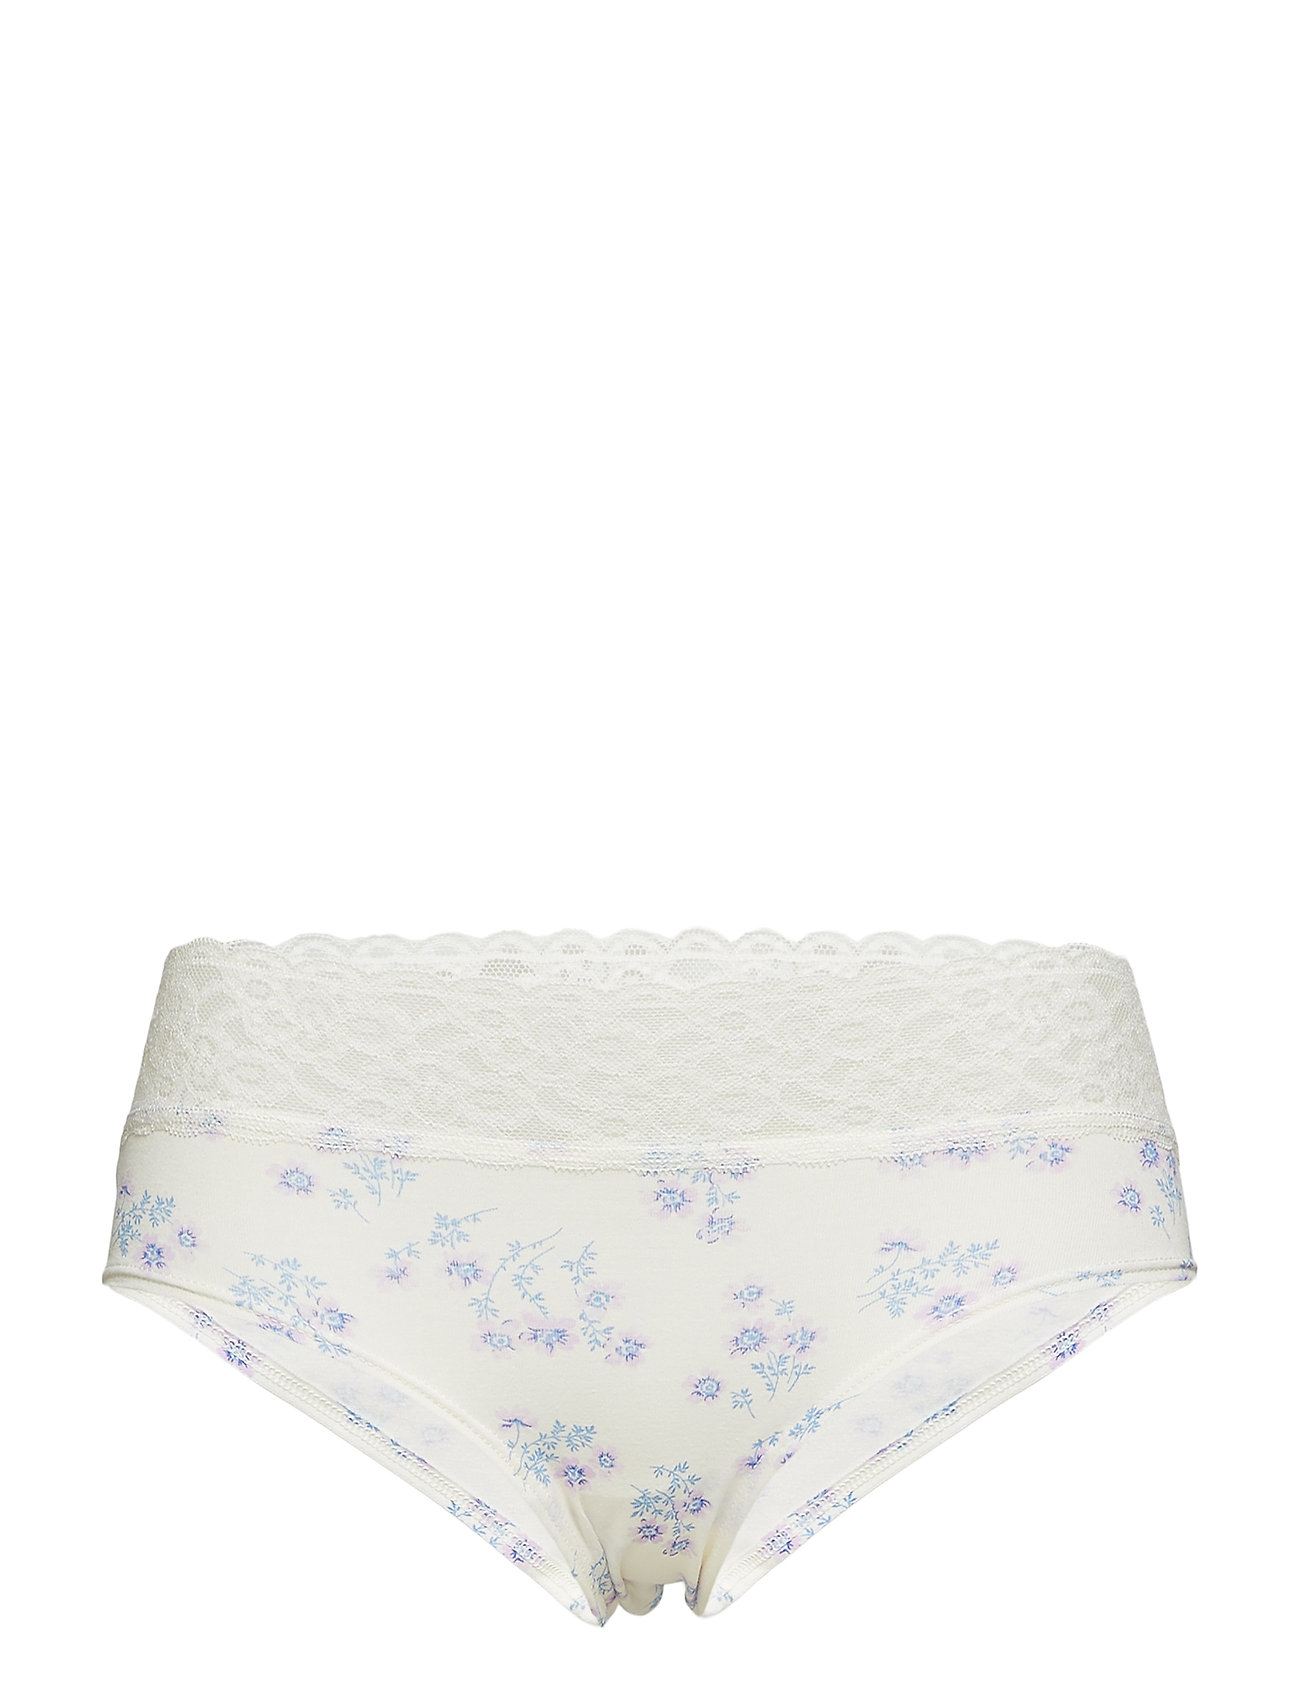 GAP Stretch Cotton & Lace Hipster